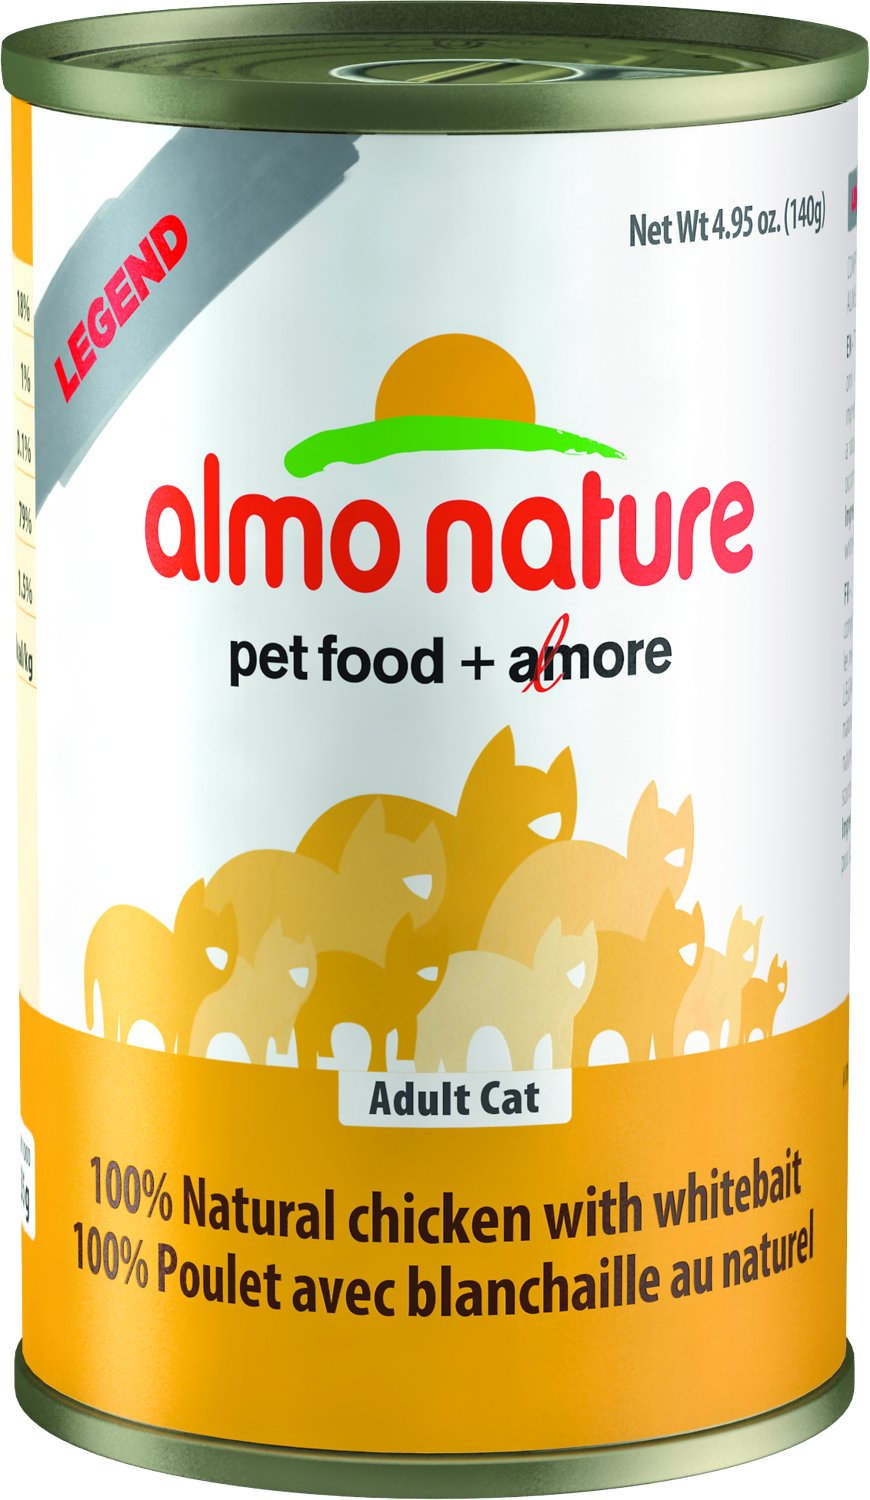 almo nature cat food review